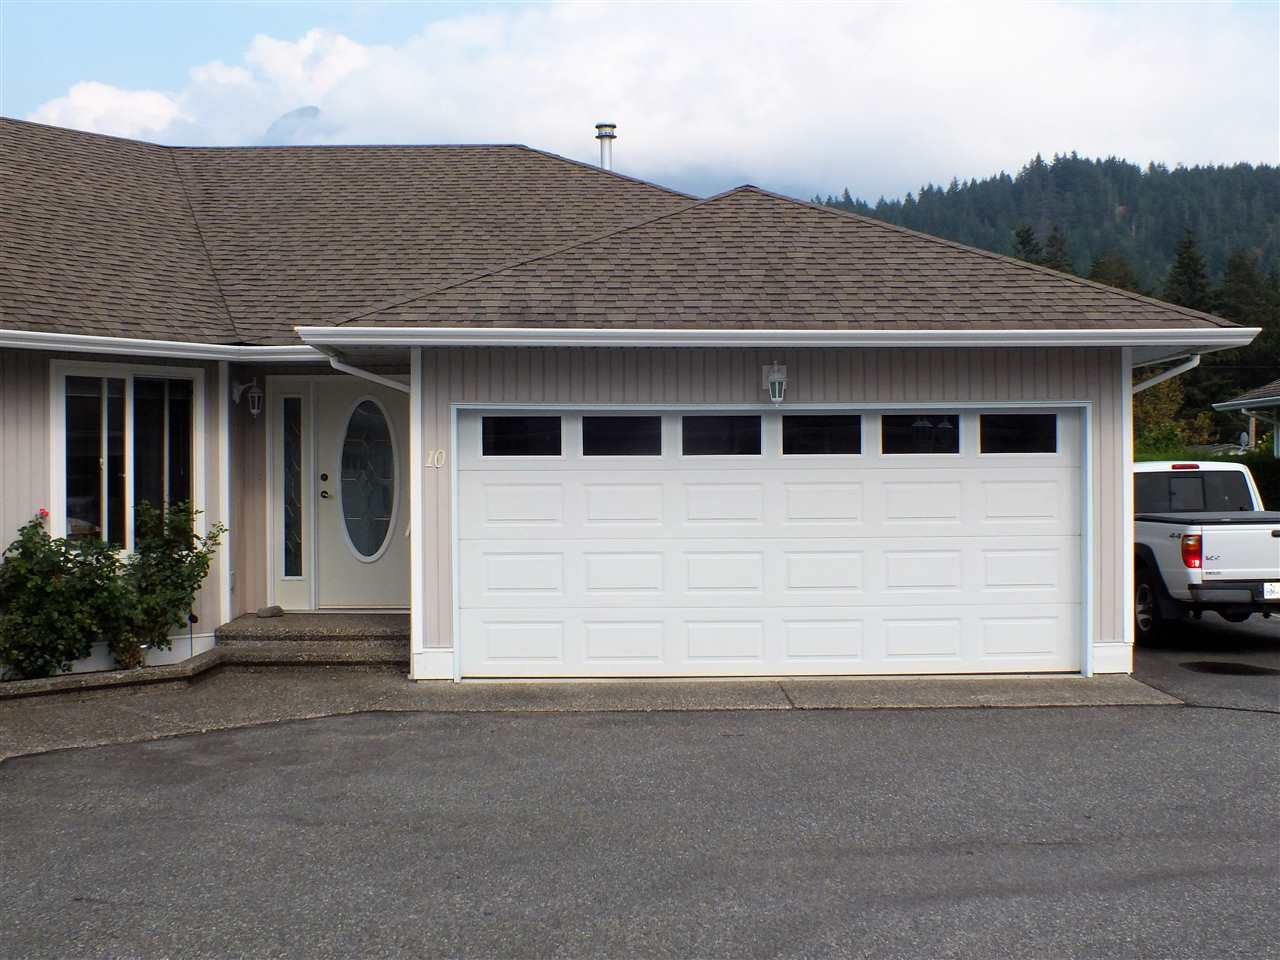 WELL APPOINTED RANCHER STYLE TOWNHOME NEAR GOLF COURSE AND TOWN CENTER. FEATURING 2 BEDROOMS AND 2 FULL BATHS THIS TOWNHOME ALSO BOASTS A DOUBLE GARAGE, LARGE MASTER BEDROOM, SPACIOUS KITCHEN AND EATING AREA, GAS FIREPLACE, BUILT IN VAC AND 5 APPLIANCES. SMALL 13 MEMBER STRATA AND LOW MONTHLY FEES OF $152.19. GREAT RETIREMENT DEVELOPMENT IN SCENIC HOPE BC.